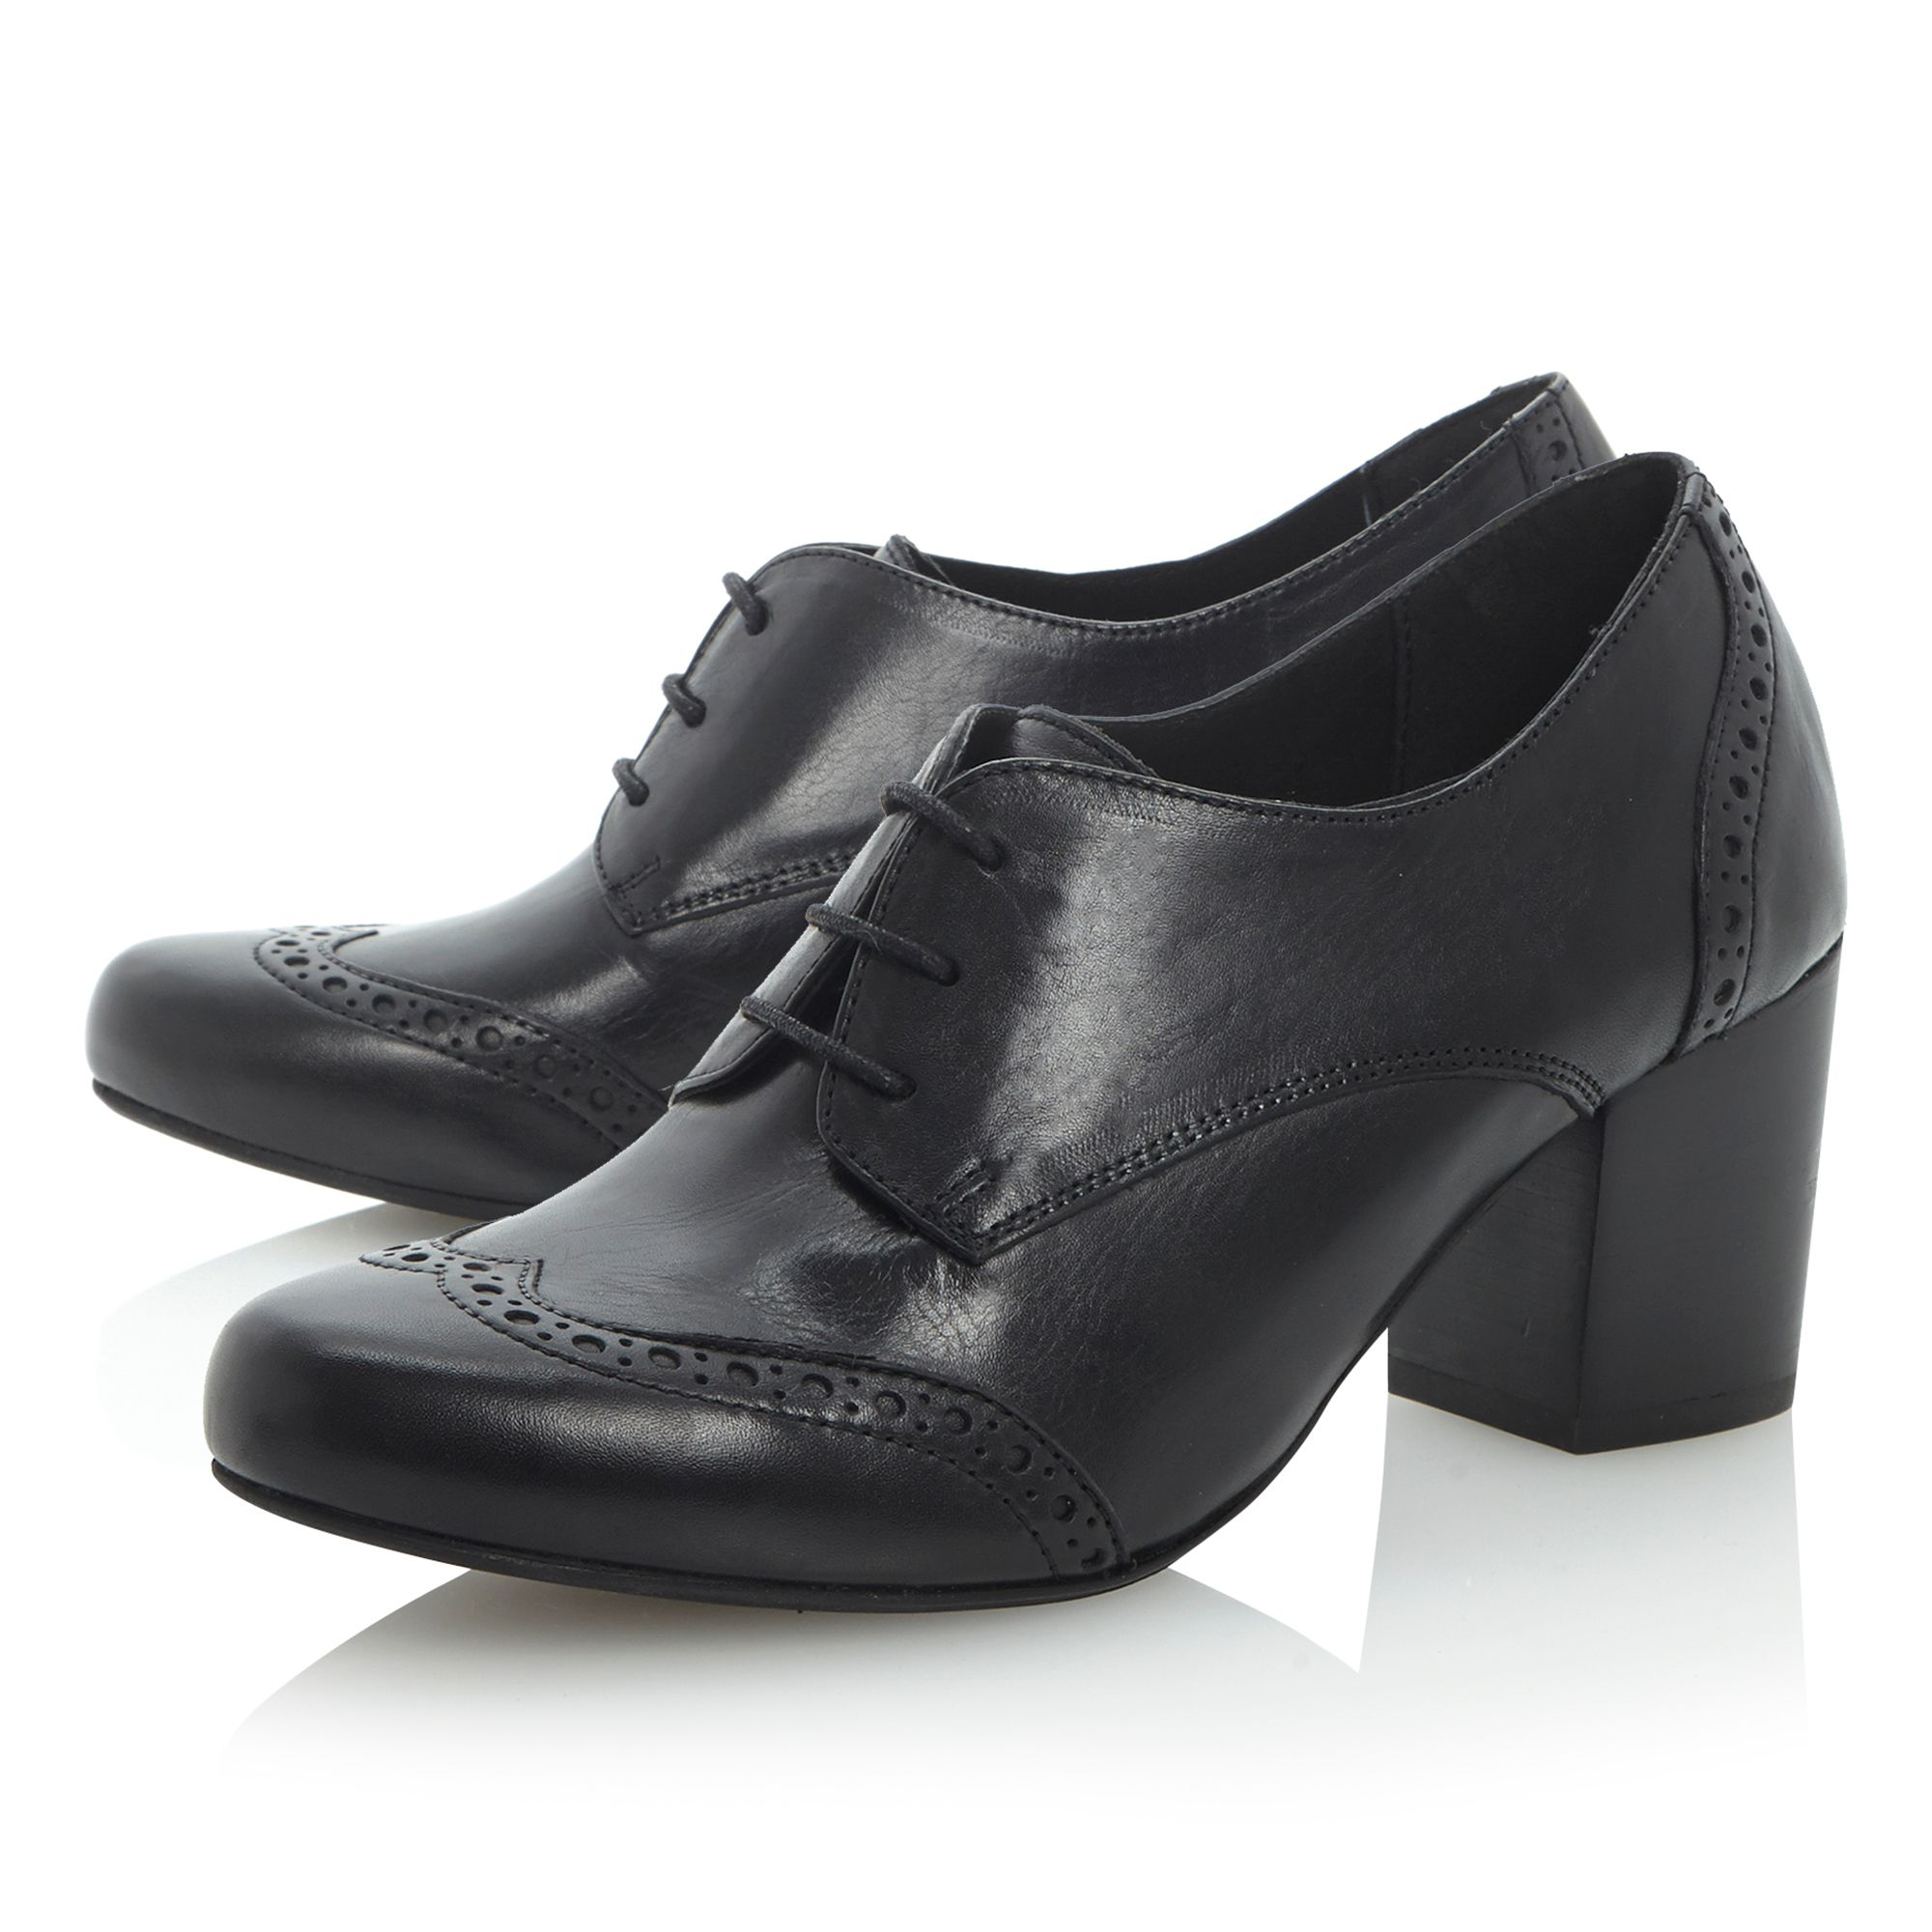 Abada laceup town court shoes